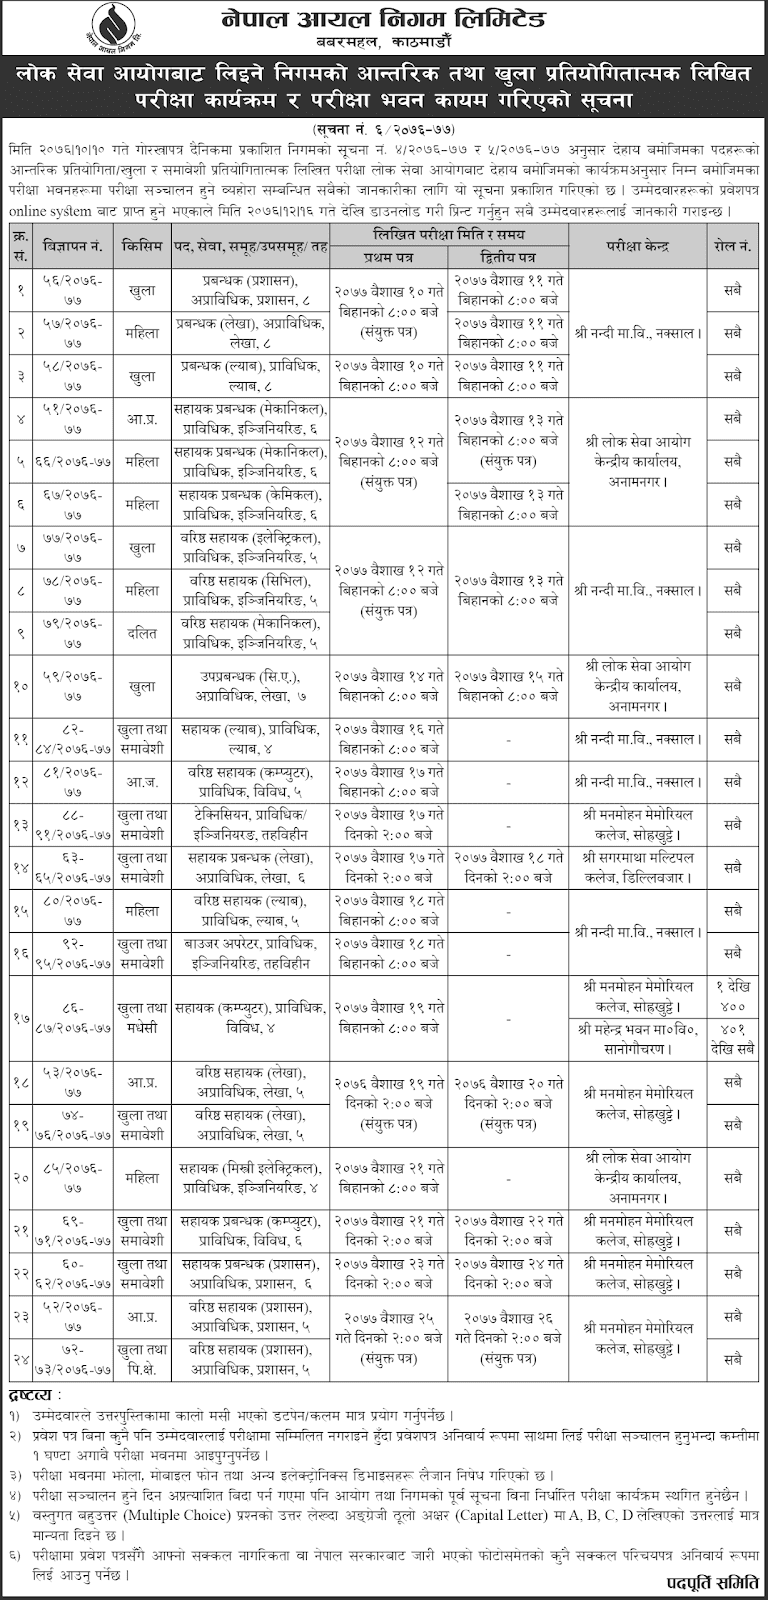 Nepal Oil Corporation Written Exam Routine and Center